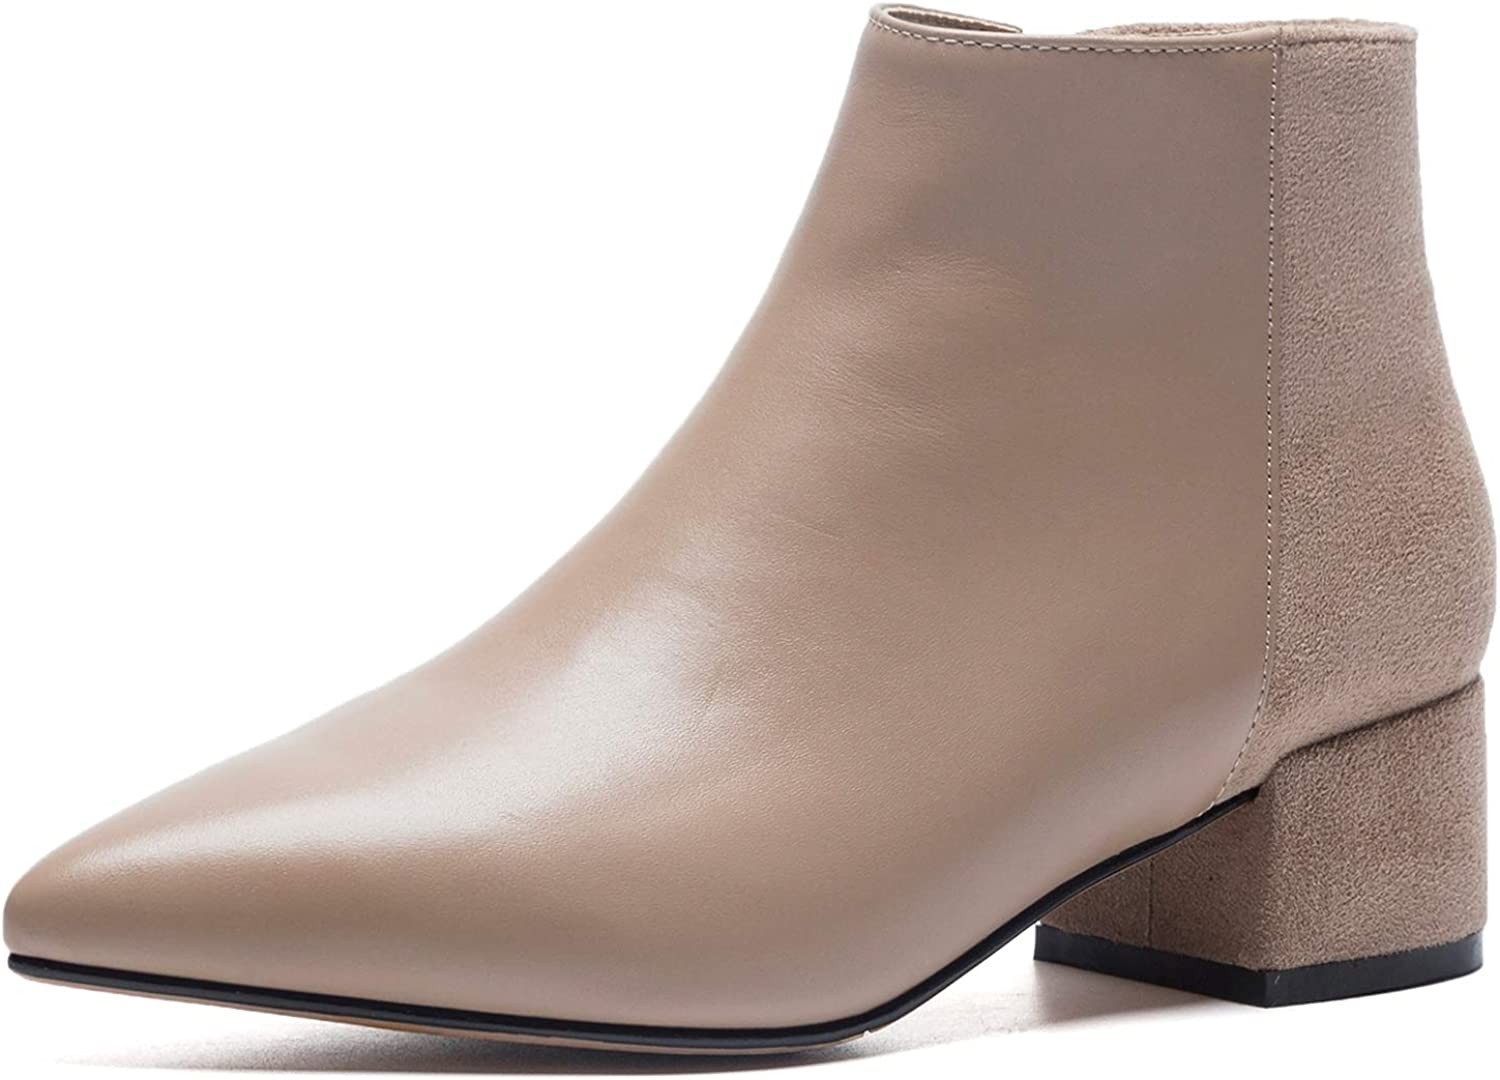 U-lite Womens Pointed Toe Zipper Up Slip On Chelsea Booties Marin Boots